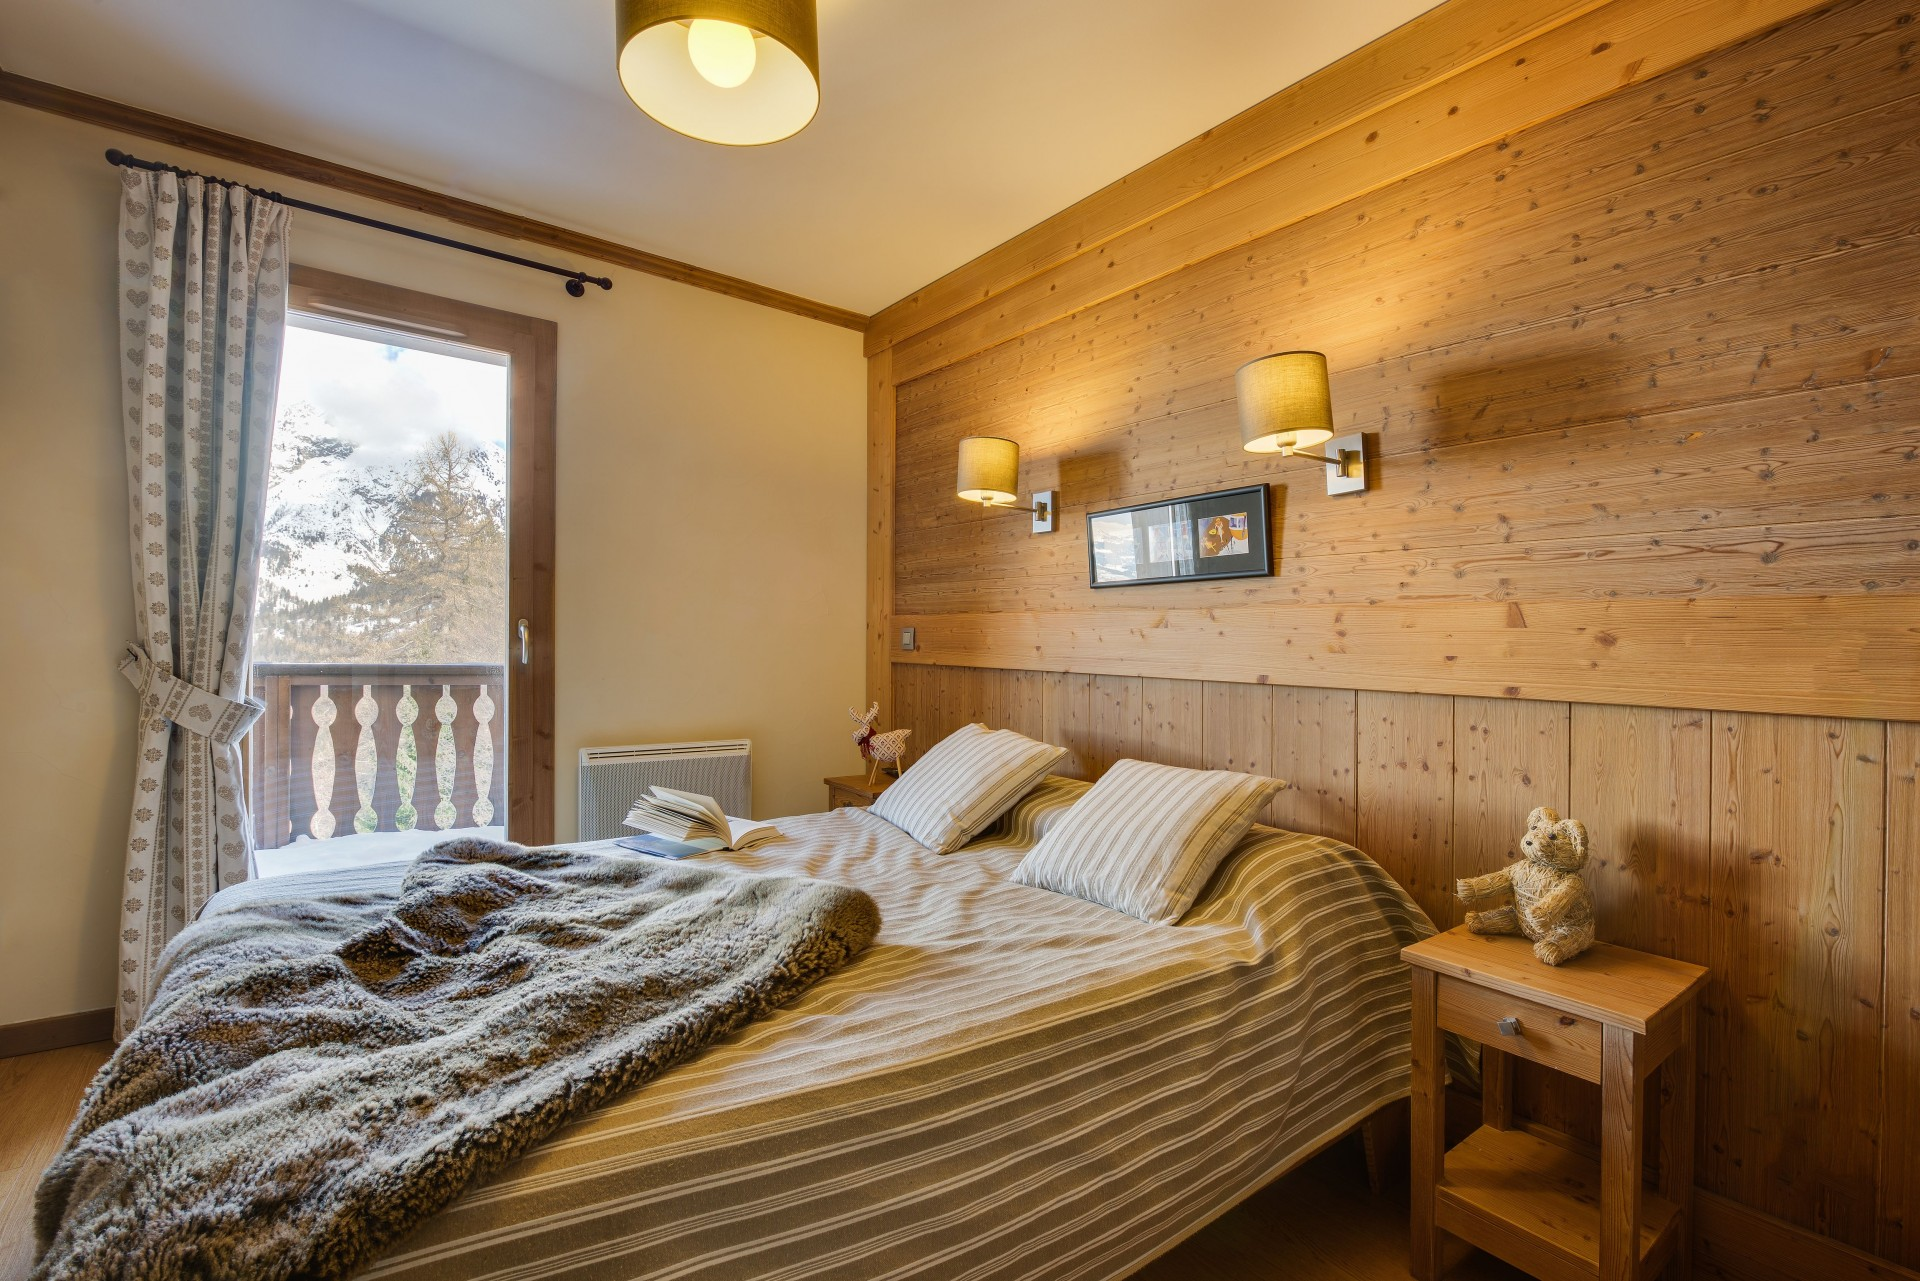 sainte-foy-tarentaise-location-appartement-luxe-ronice